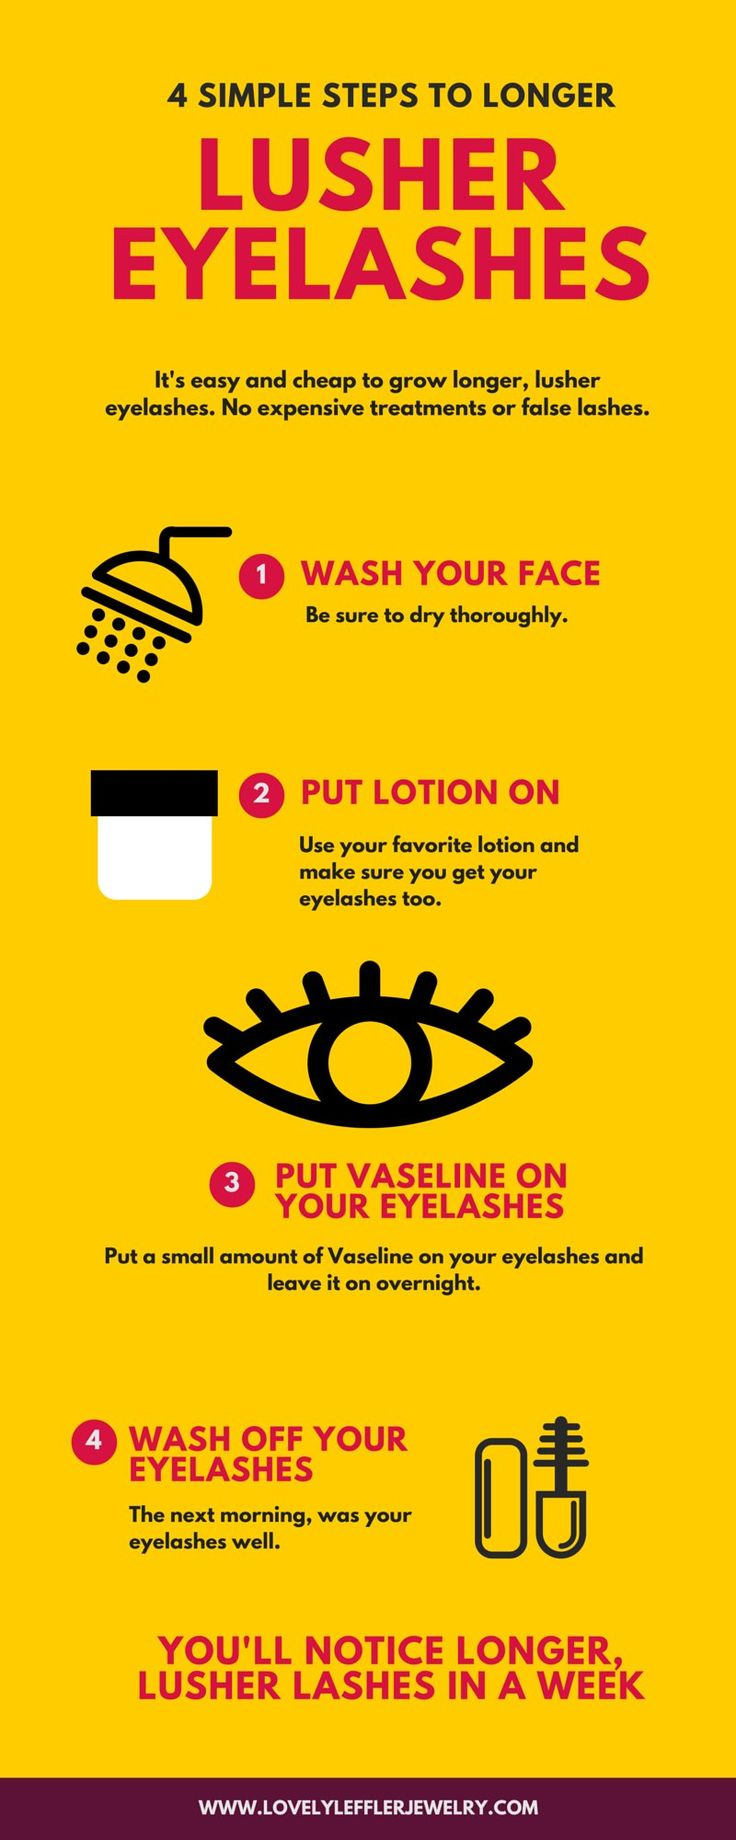 How Can I Make My Eyelashes Grow Faster? 4 easy steps to get longer, lusher eyelashes.